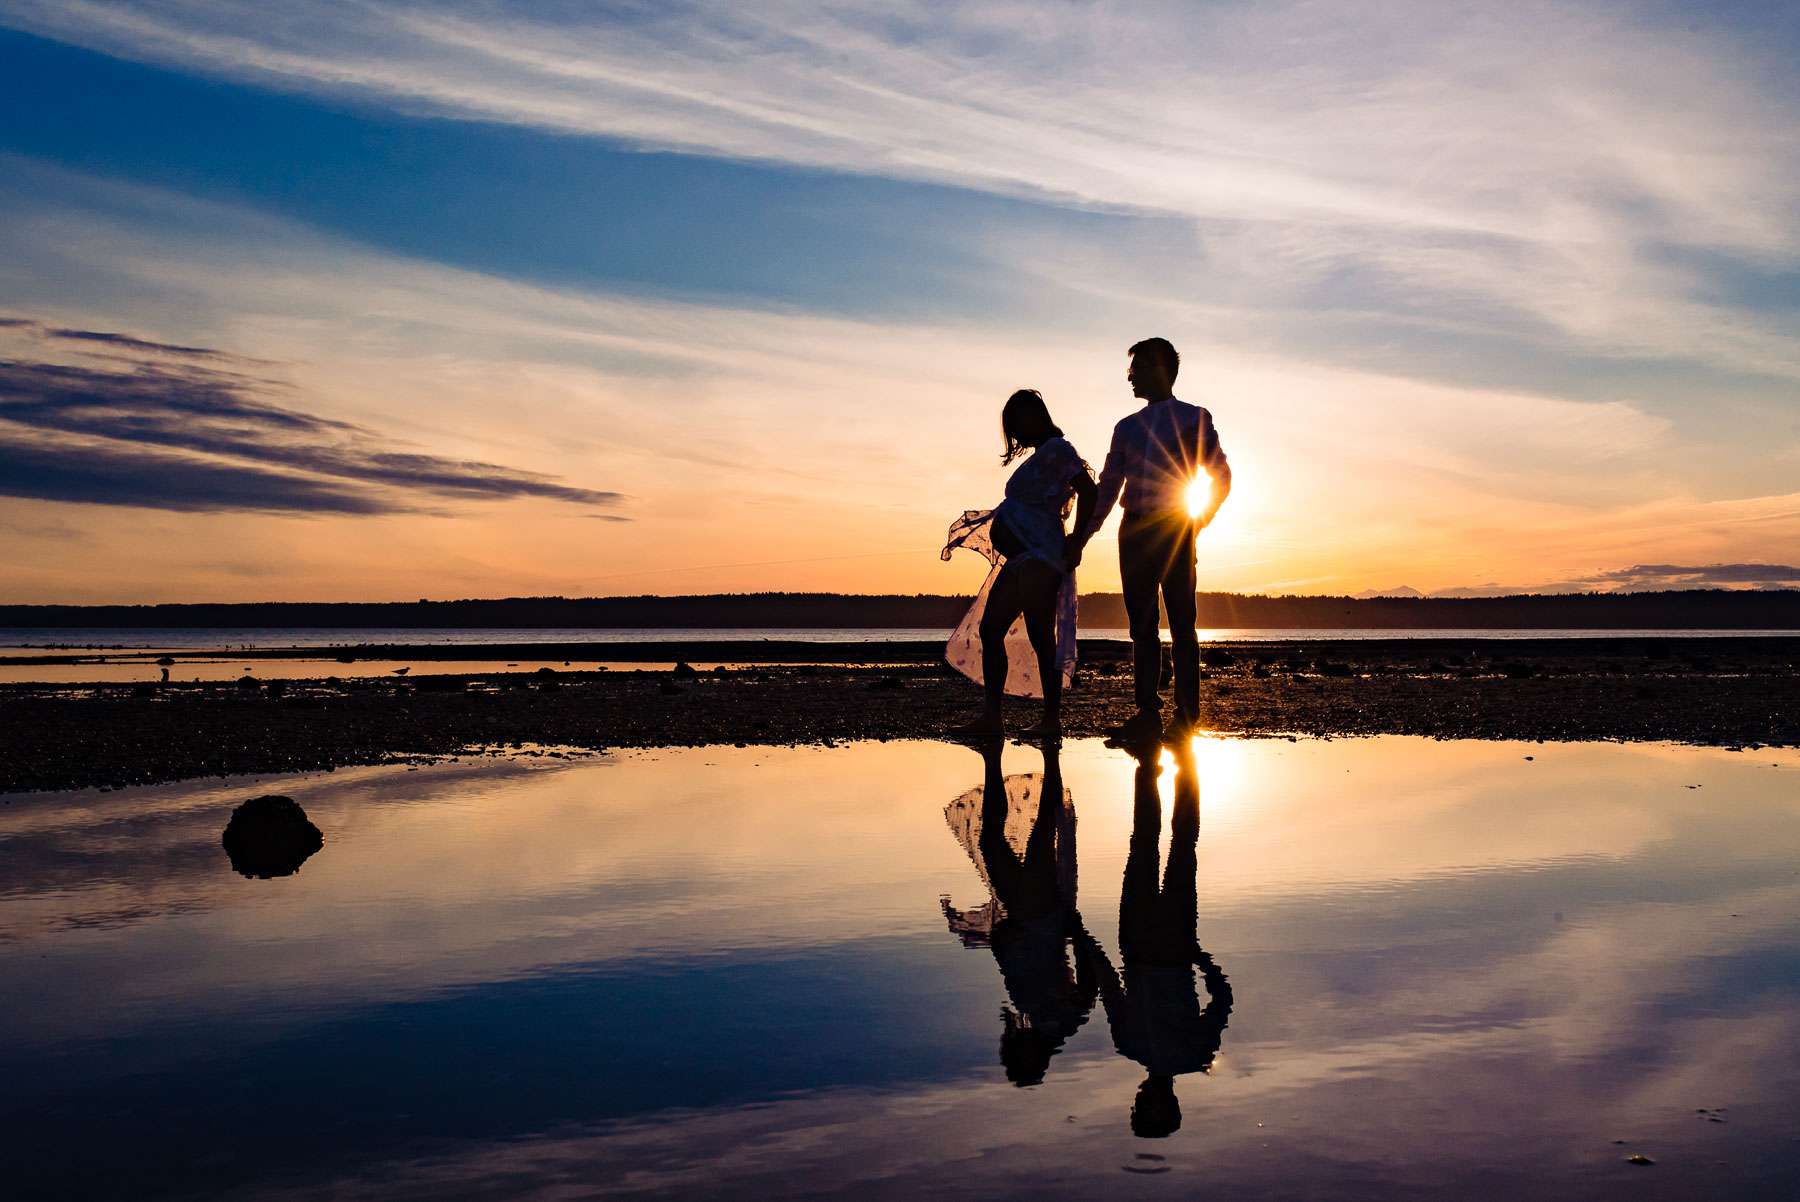 sunset silhouette of expecting couple at beach with reflection in water